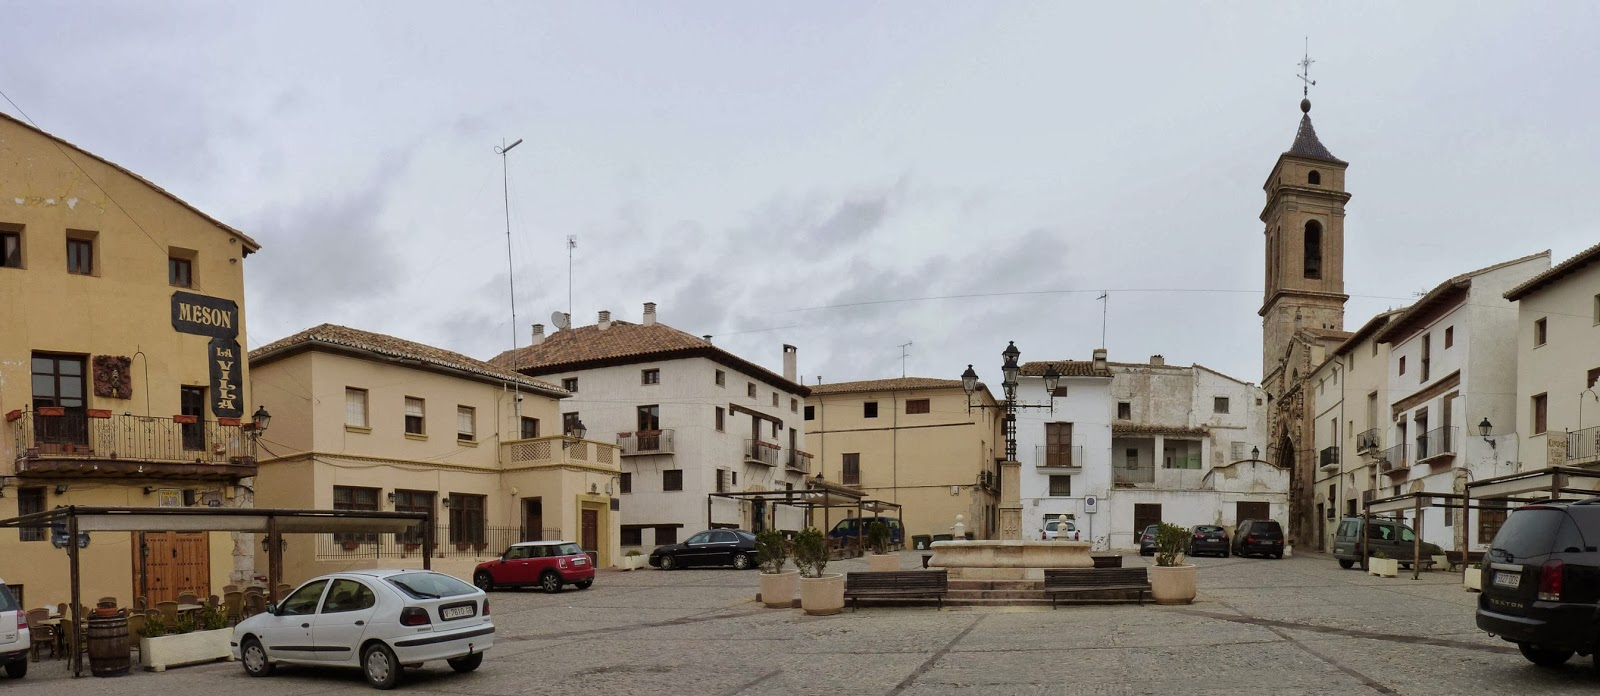 La Villa de Requena.